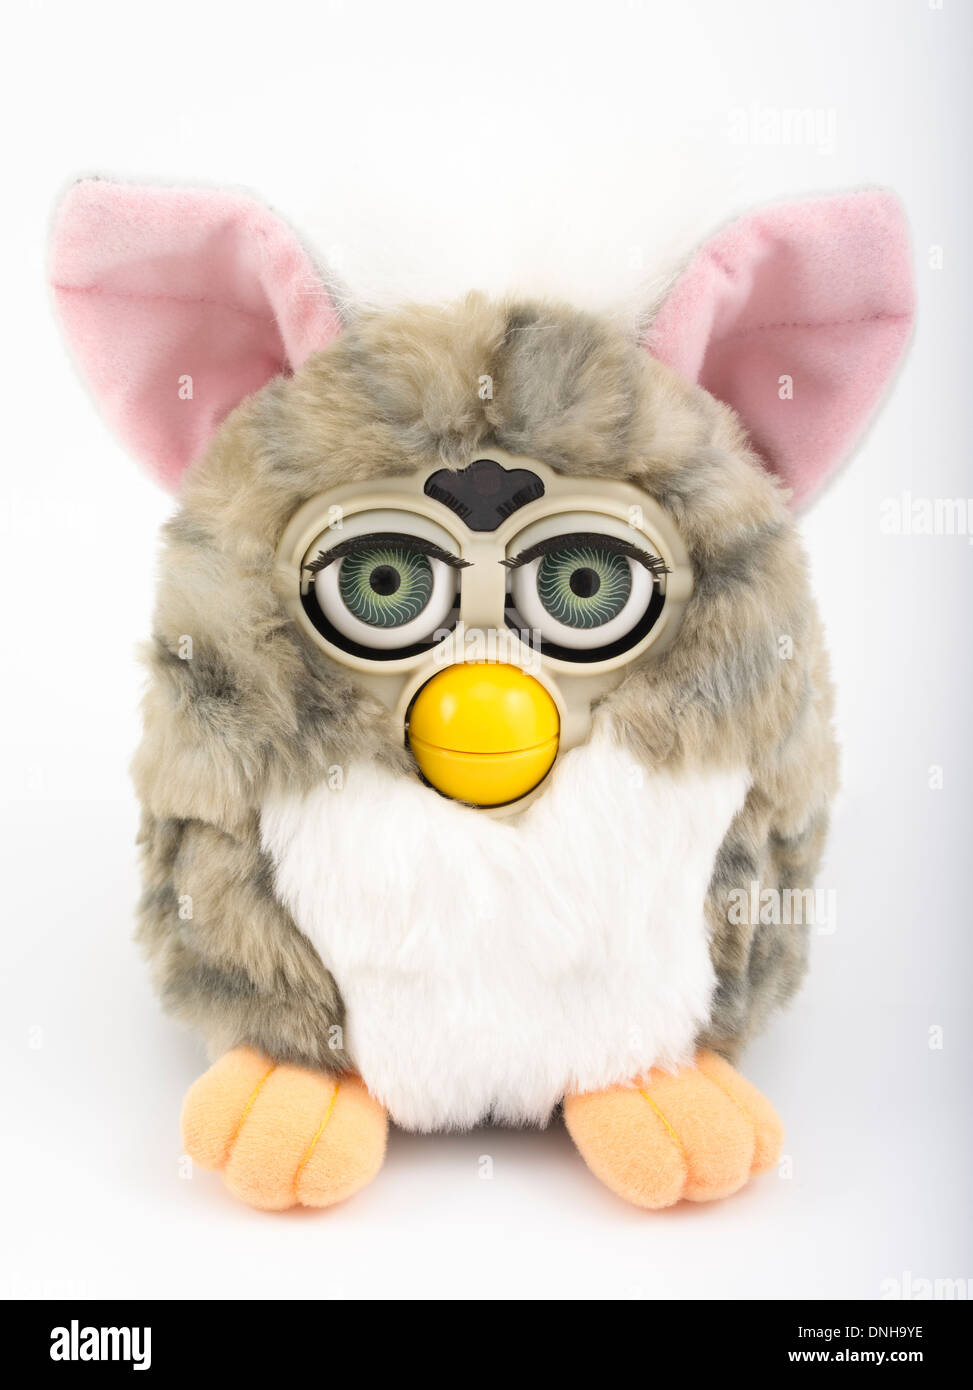 1998 Furby electronic robotic toy by Tiger Electronics - Stock Image